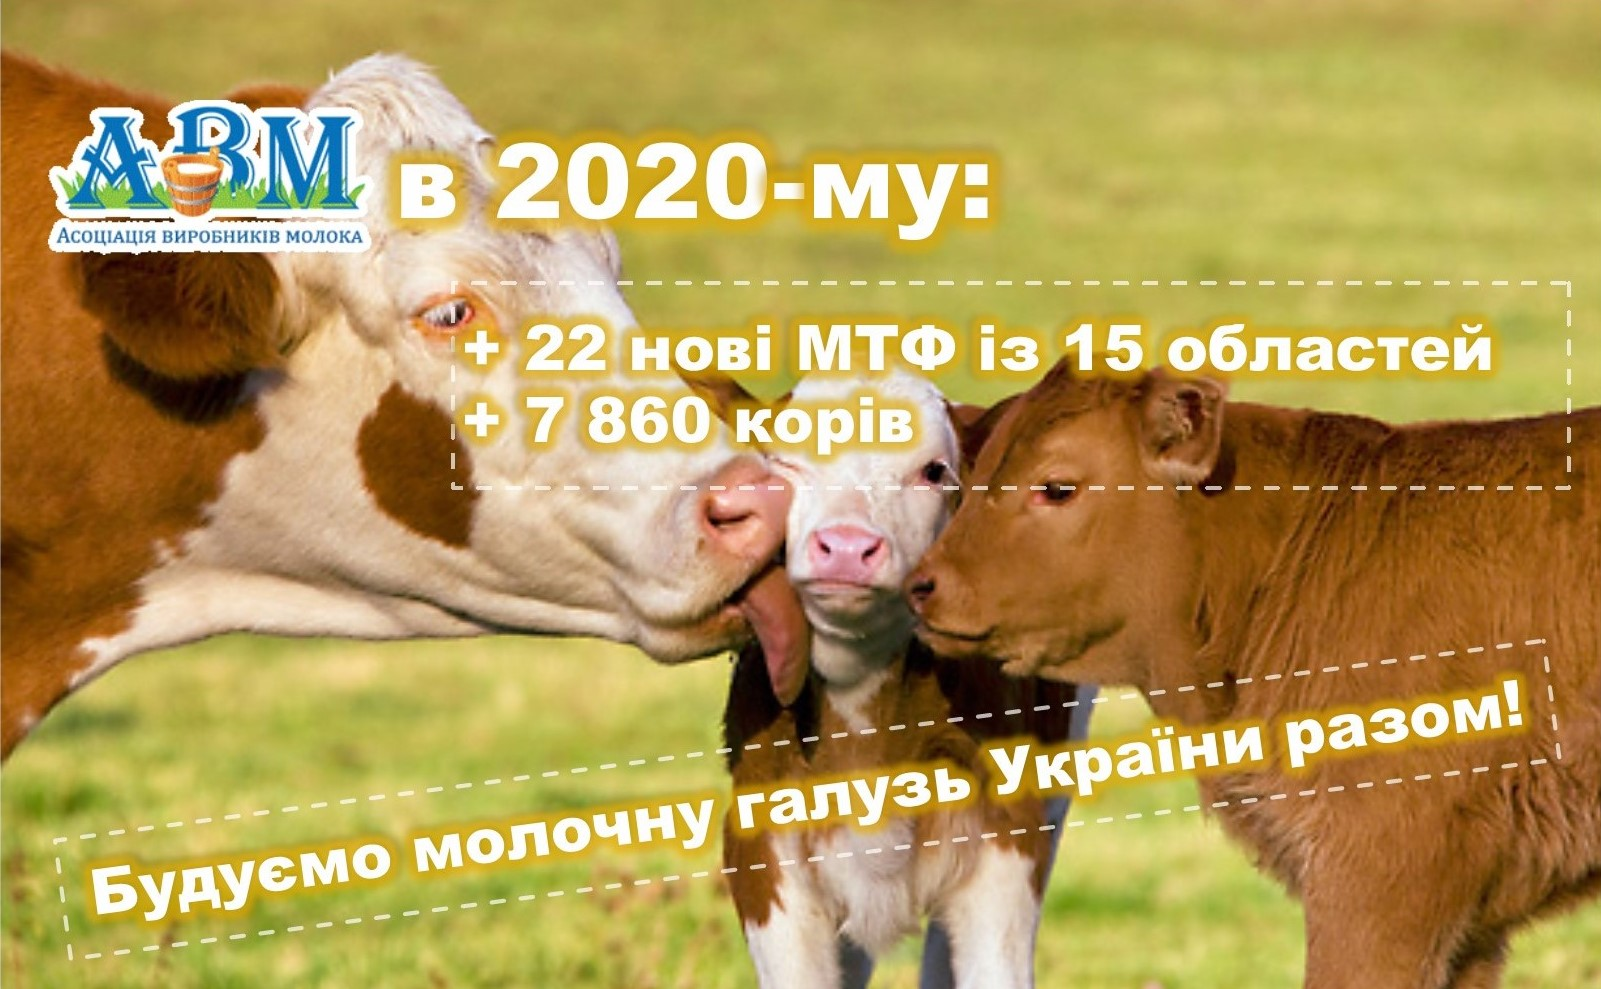 22 new members of the Association of Milk Producers